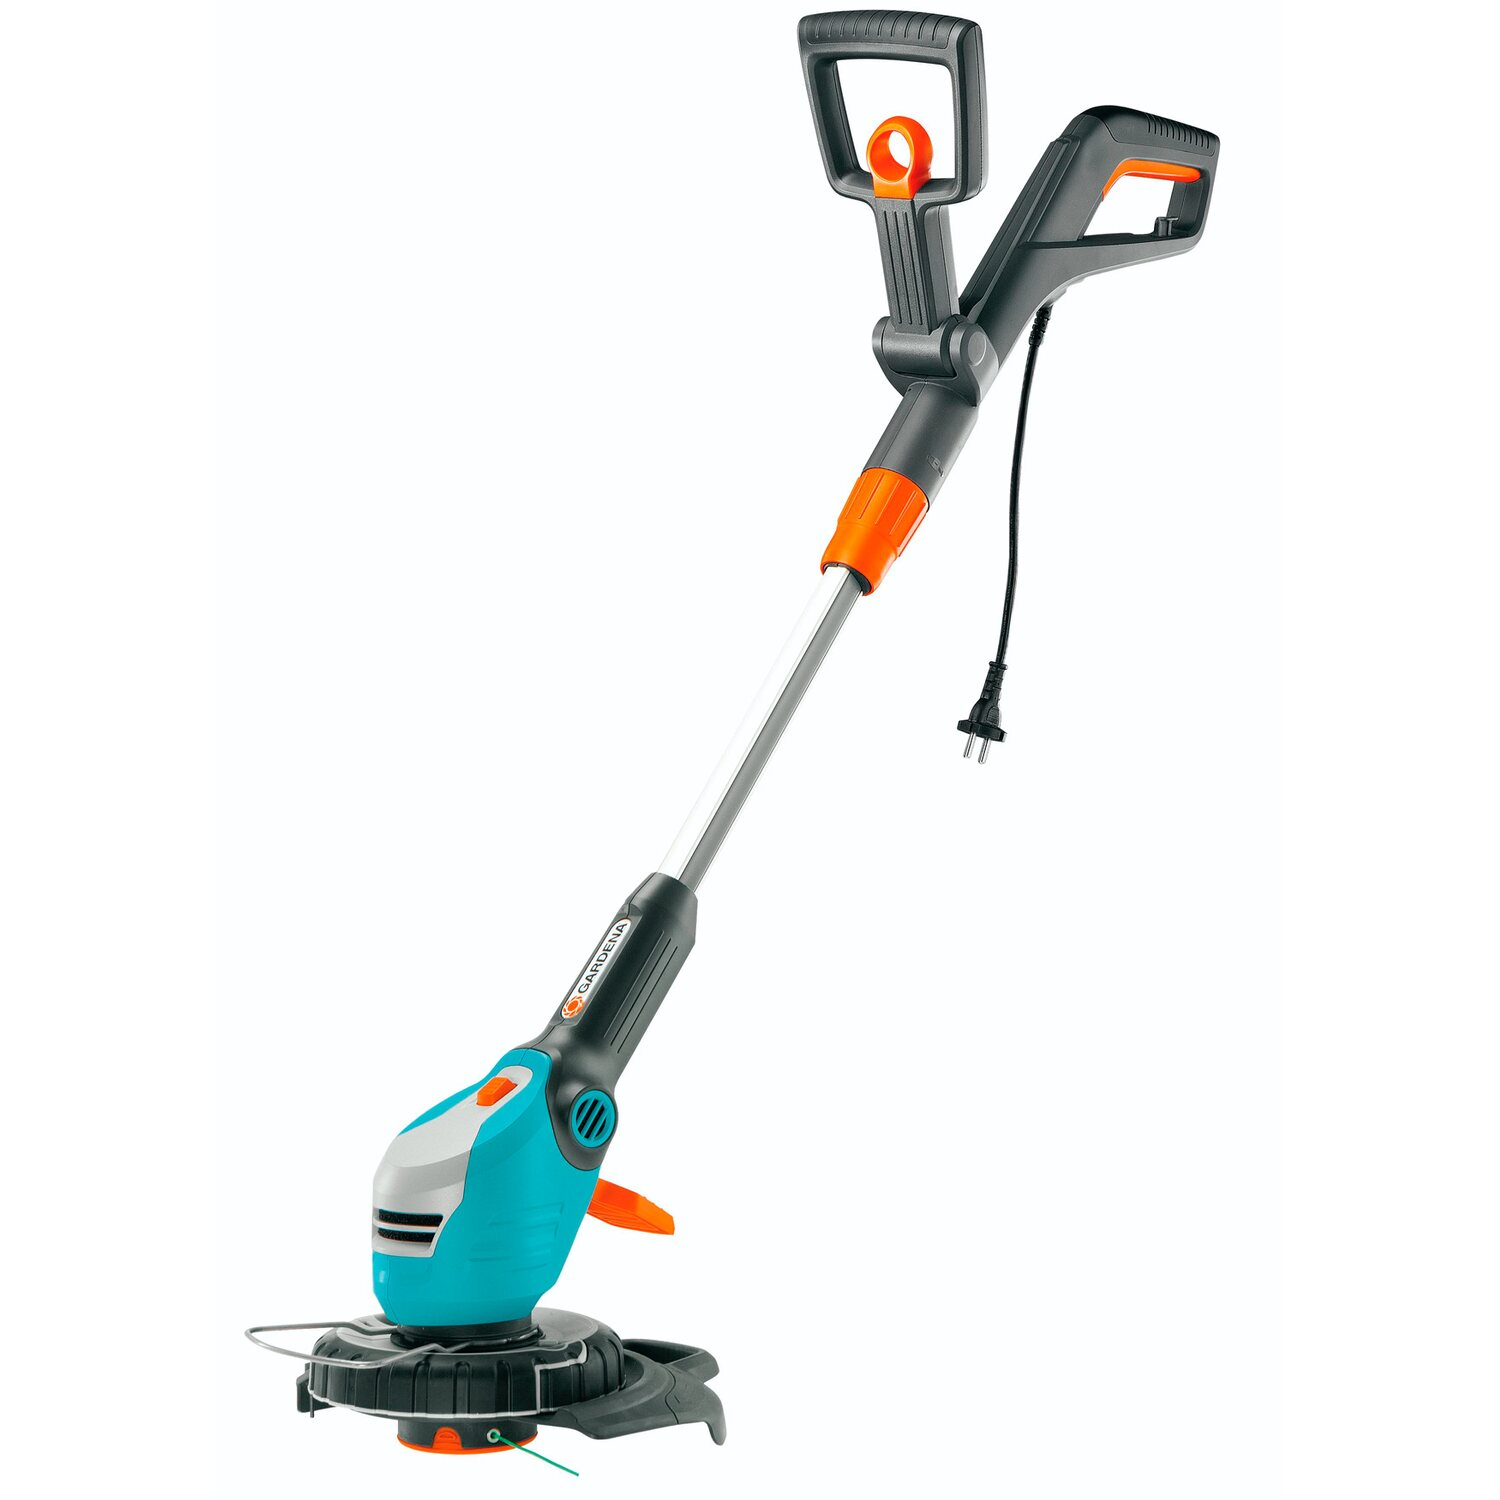 Gardena Turbotrimmer PowerCut Plus 650